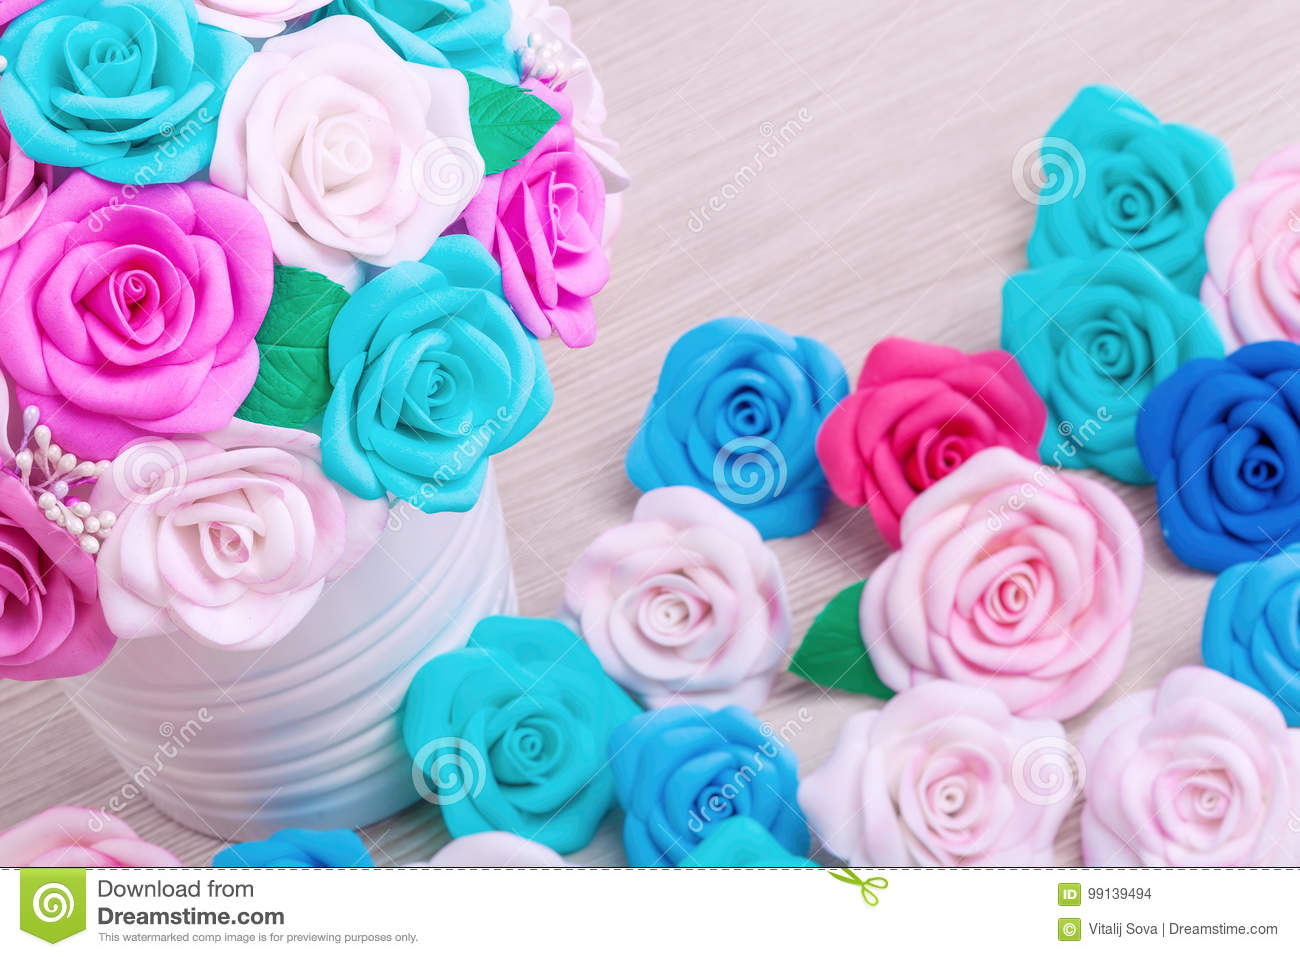 Artificial flowers roses from foam stock photo image of floral artificial flowers roses from foam mightylinksfo